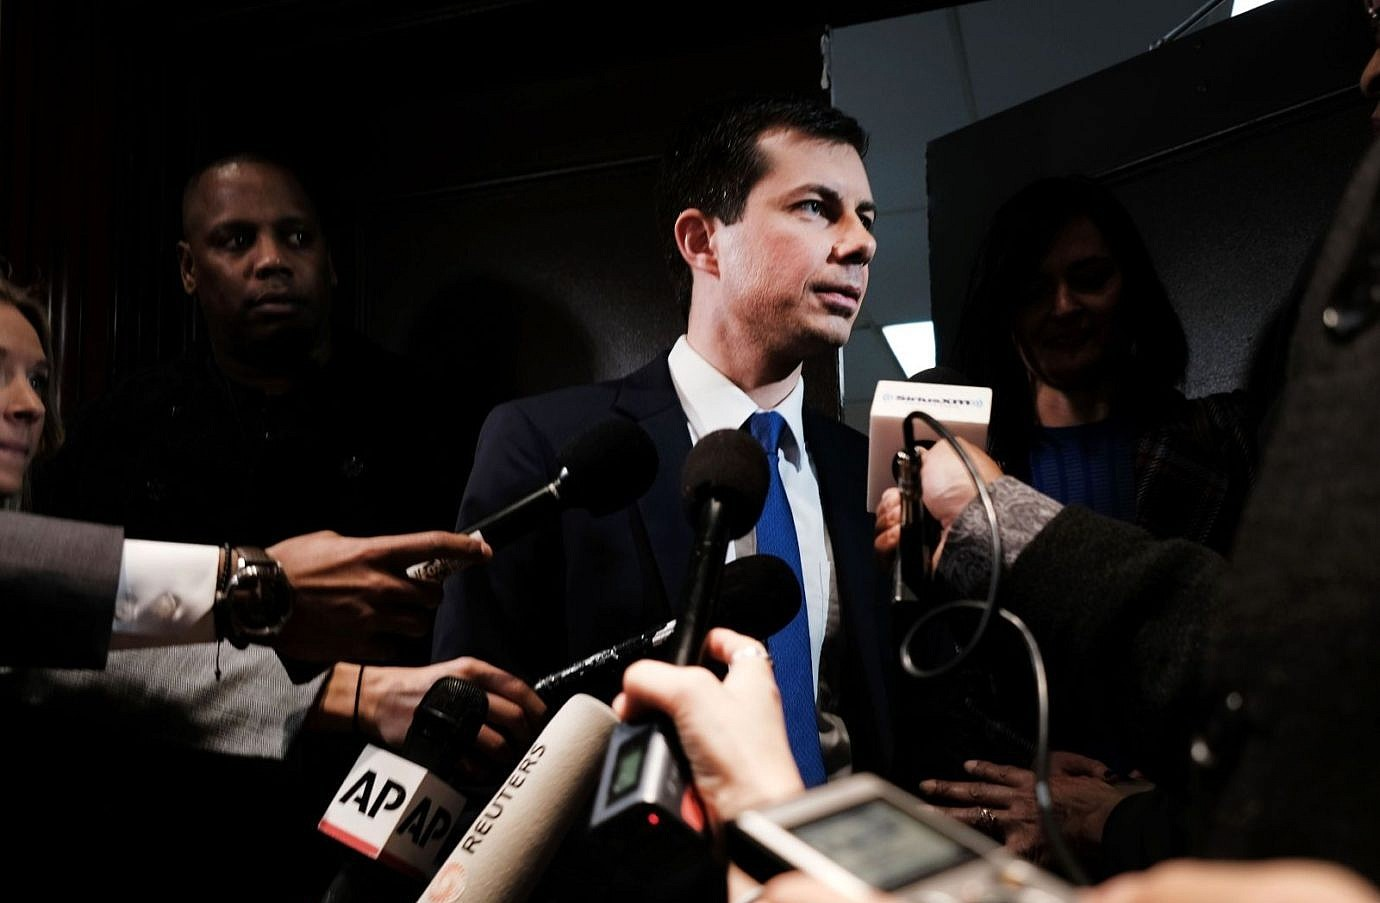 Democratic presidential hopeful Pete Buttigieg speaks to the media at the National Action Network's annual convention in New York City